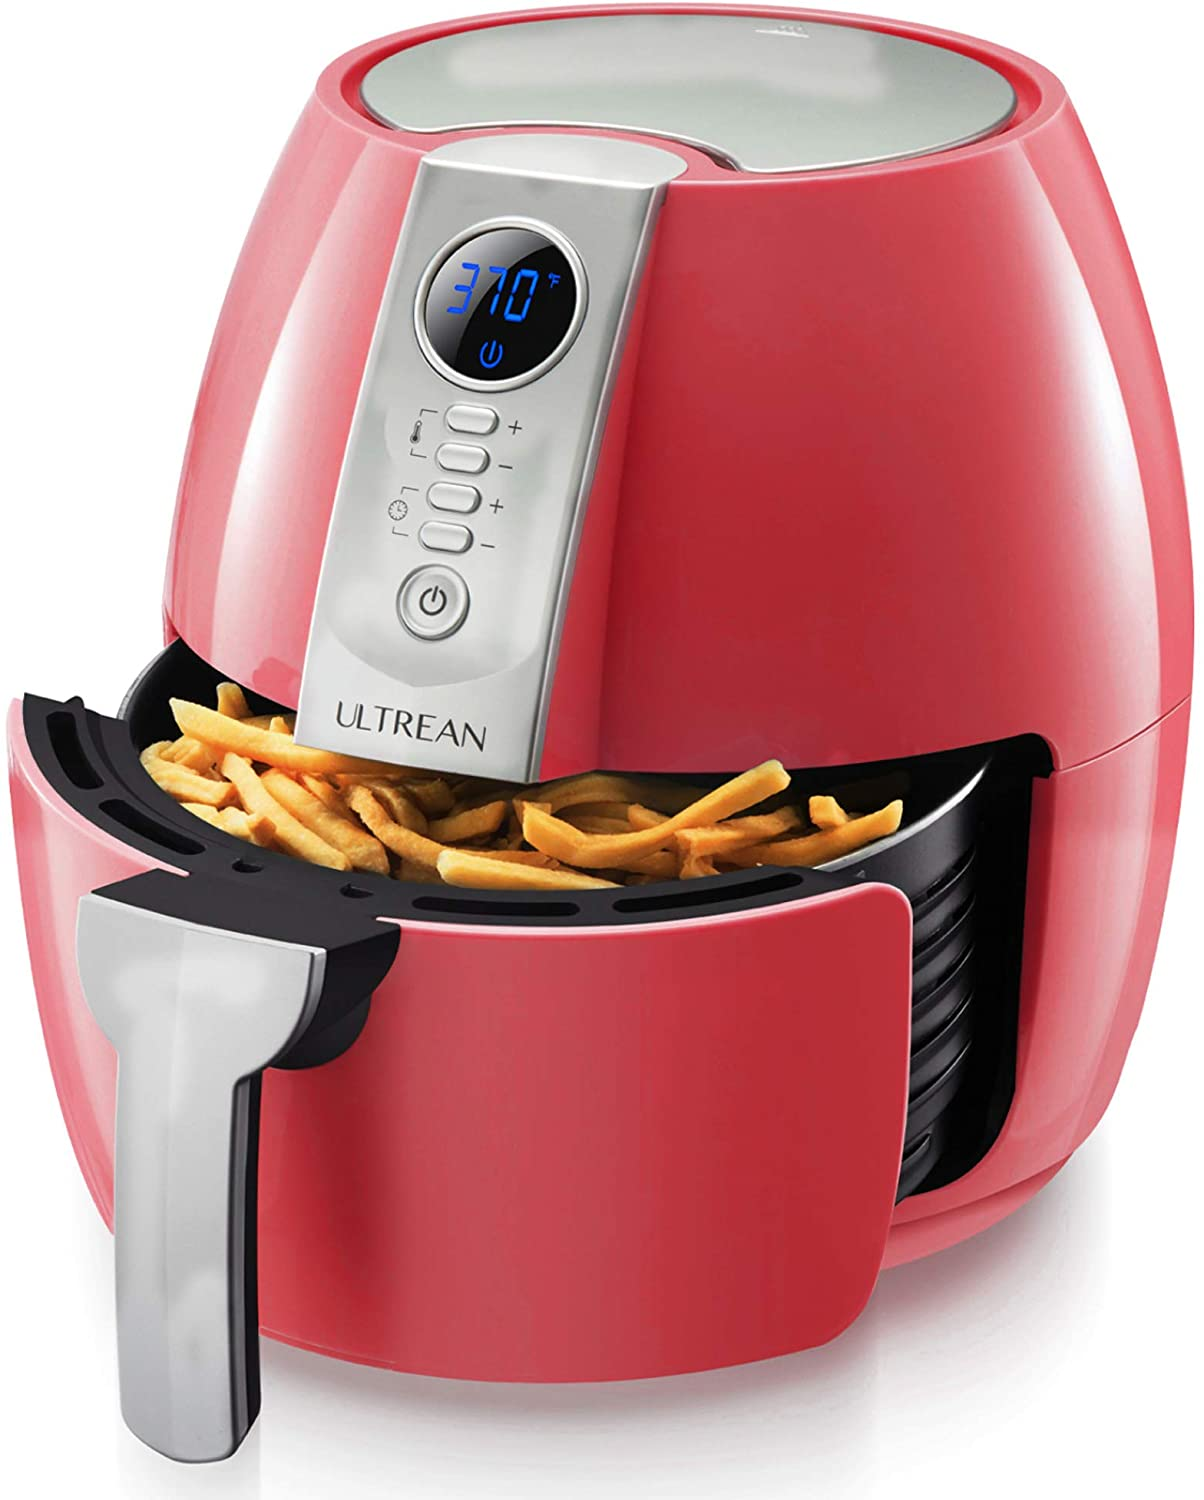 Ultrean Air Fryer, 4.2 Quart